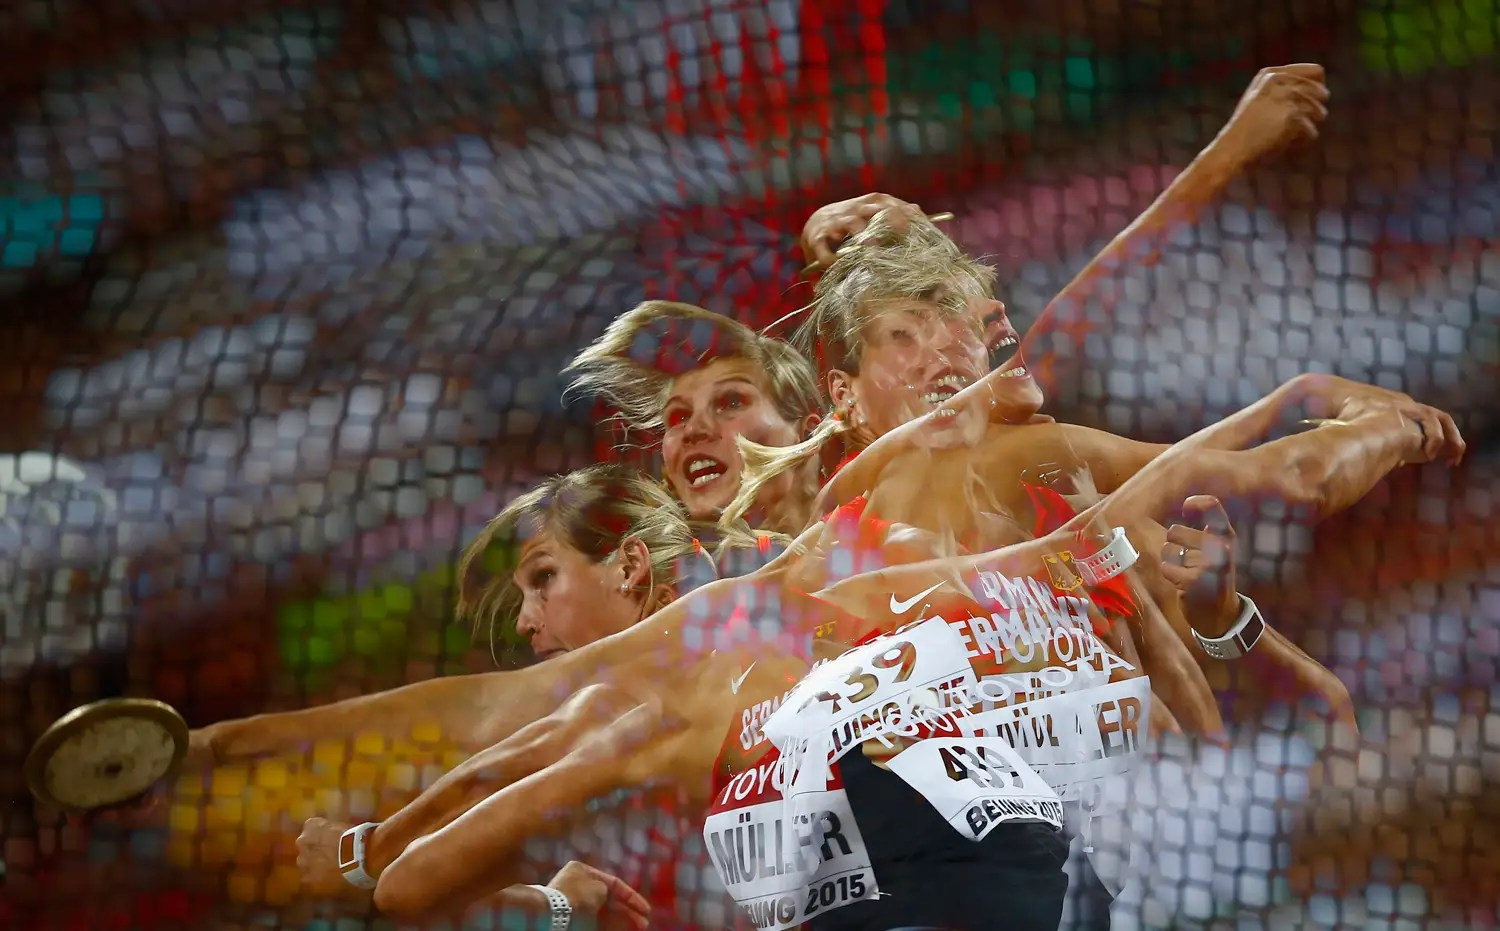 Germany's Nadine Mueller wins bronze in the discus.